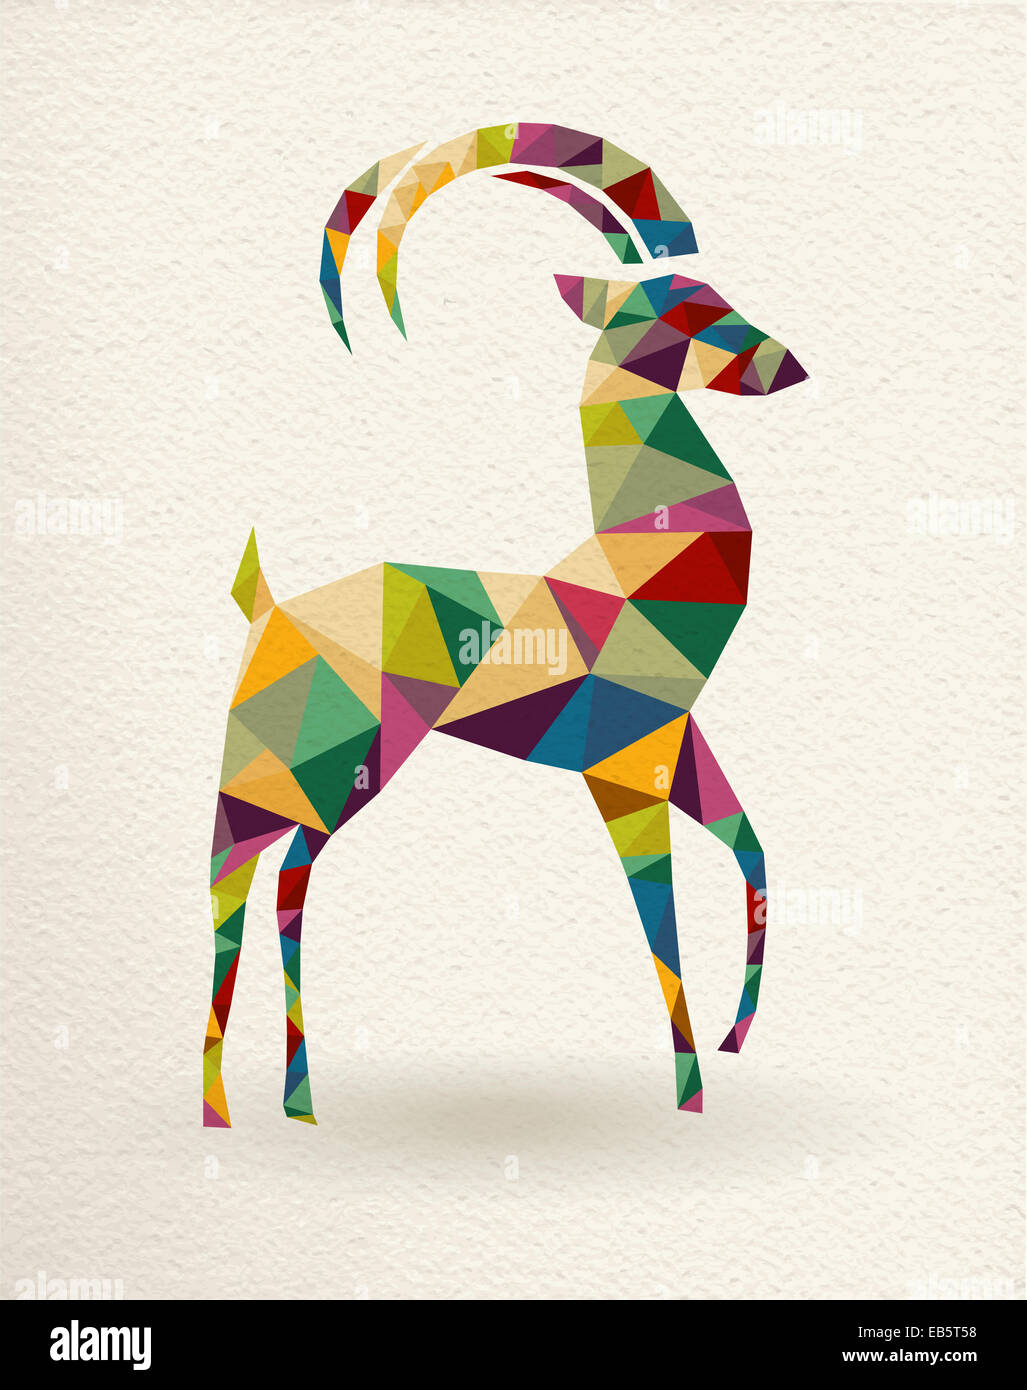 New Year of the Goat 2015 colorful geometric shape greeting card. - Stock Image